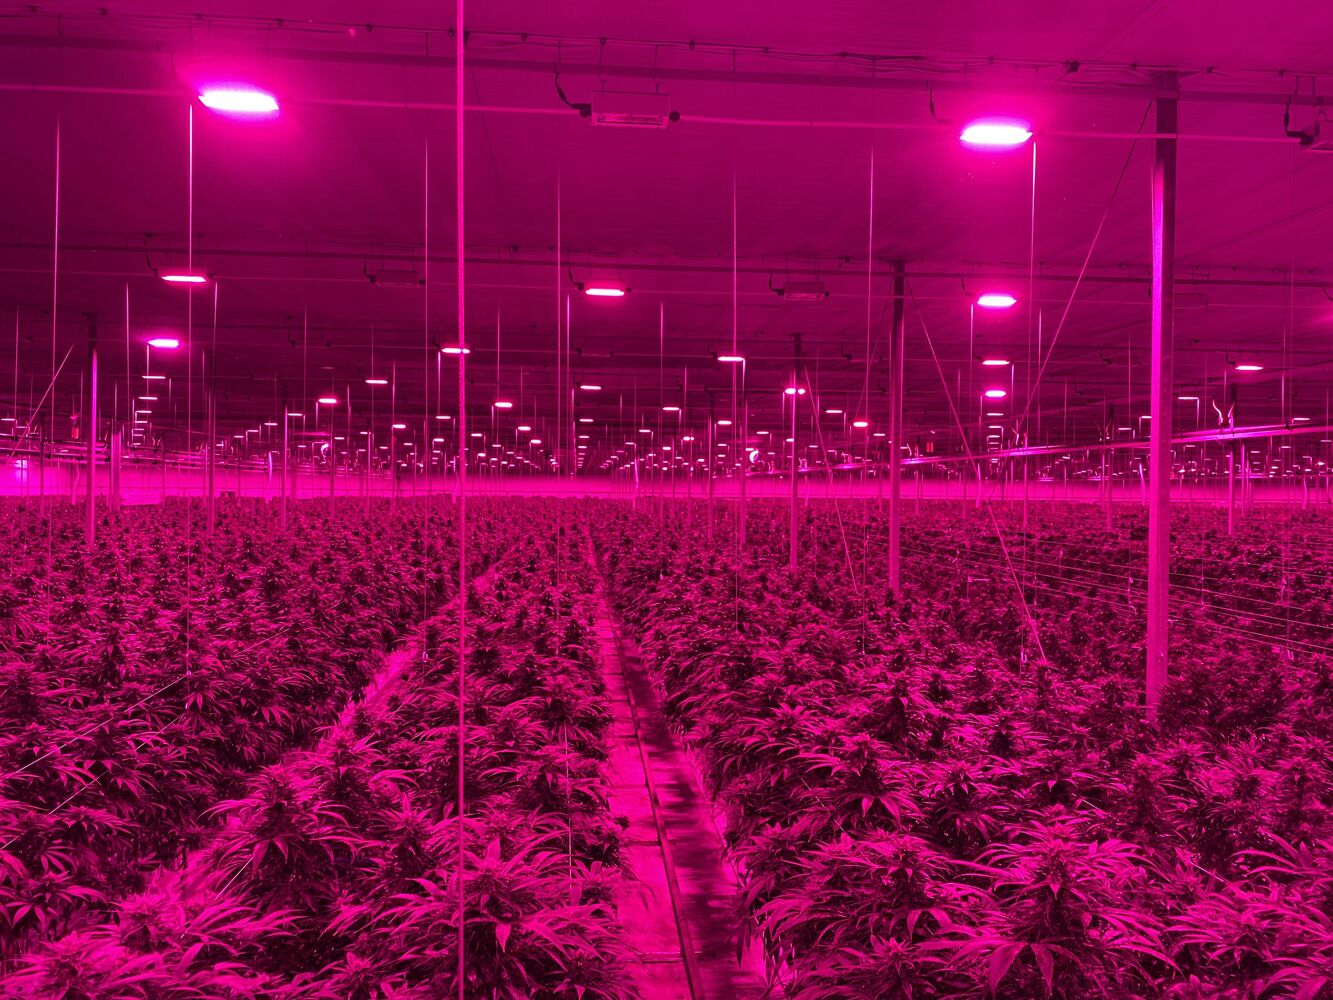 Greenhouse Canada: Lighting and curtain technologies curb light pollution, stabilize greenhouse climate